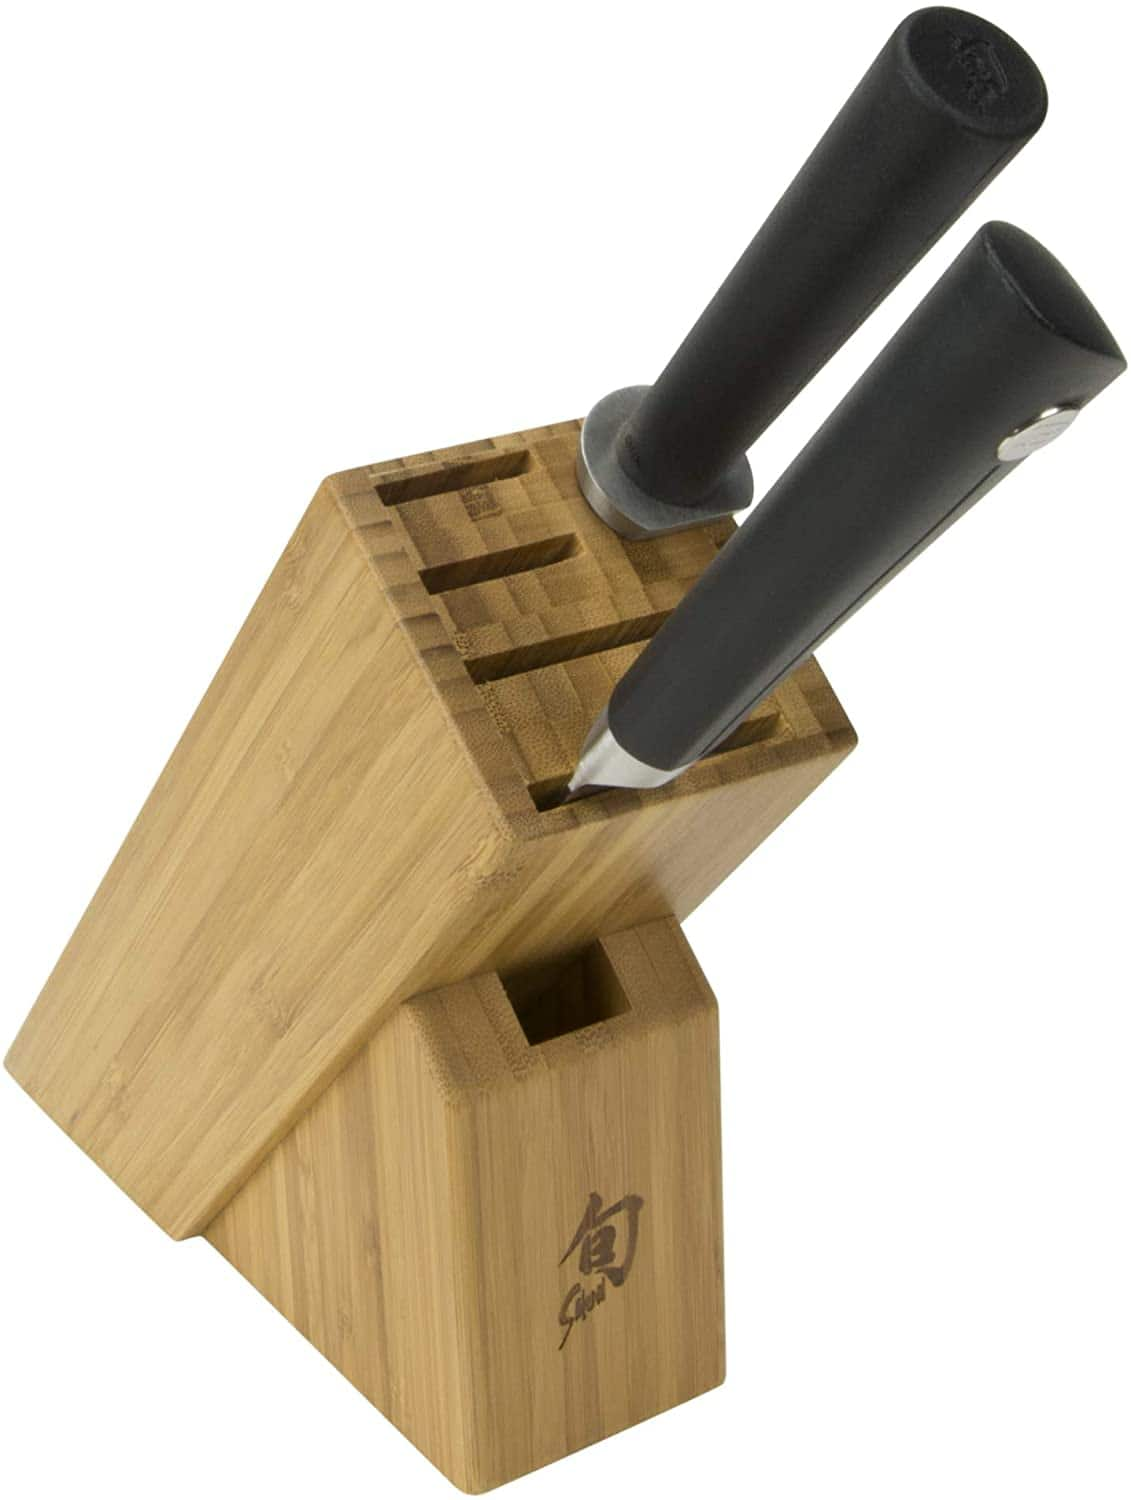 Shun Sora 3-Piece Build-A-Block Set Includes 8-Inch Chef's Knife, Combination Honing Steel and 6-Slot Slimline Block ($111.95)